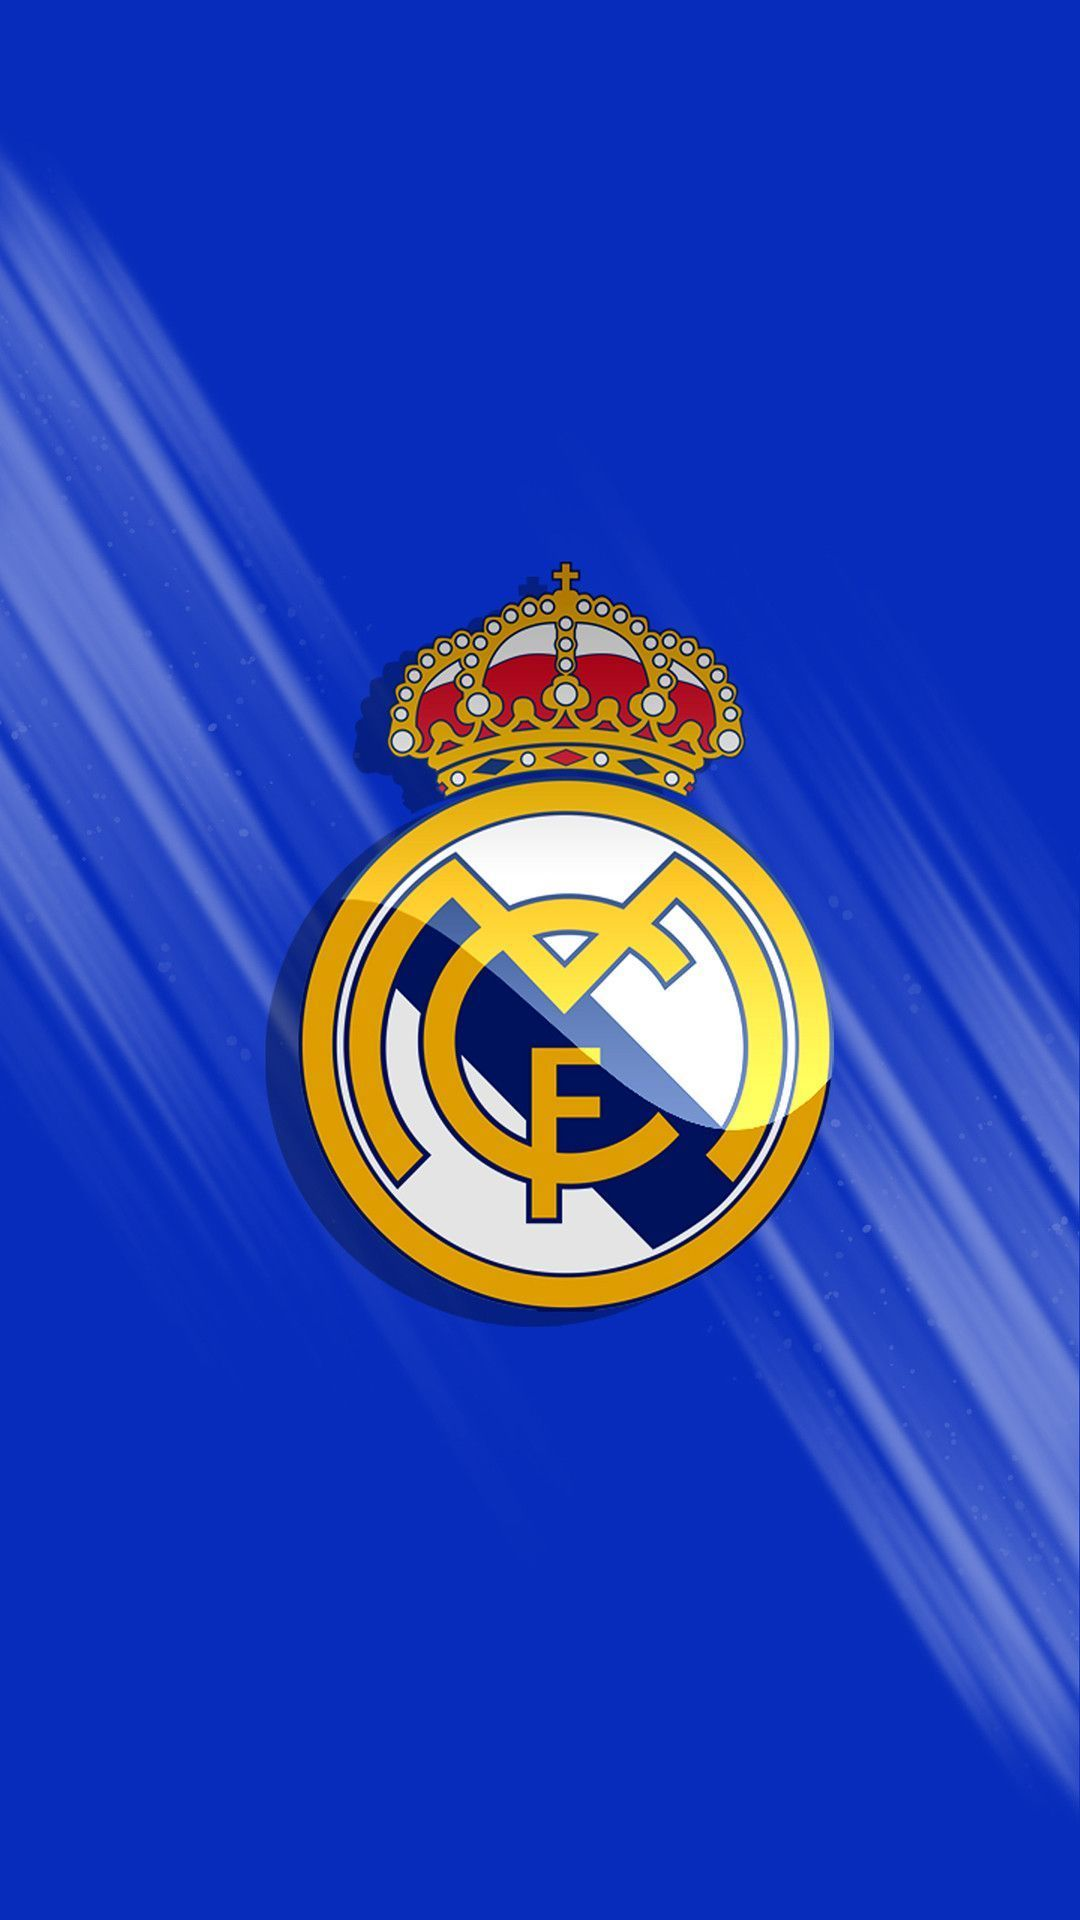 9125 Travel World Images Hd Photos 1080p Wallpapers Android Iphone 2020 In 2020 Real Madrid Wallpapers Madrid Wallpaper Real Madrid Logo Wallpapers